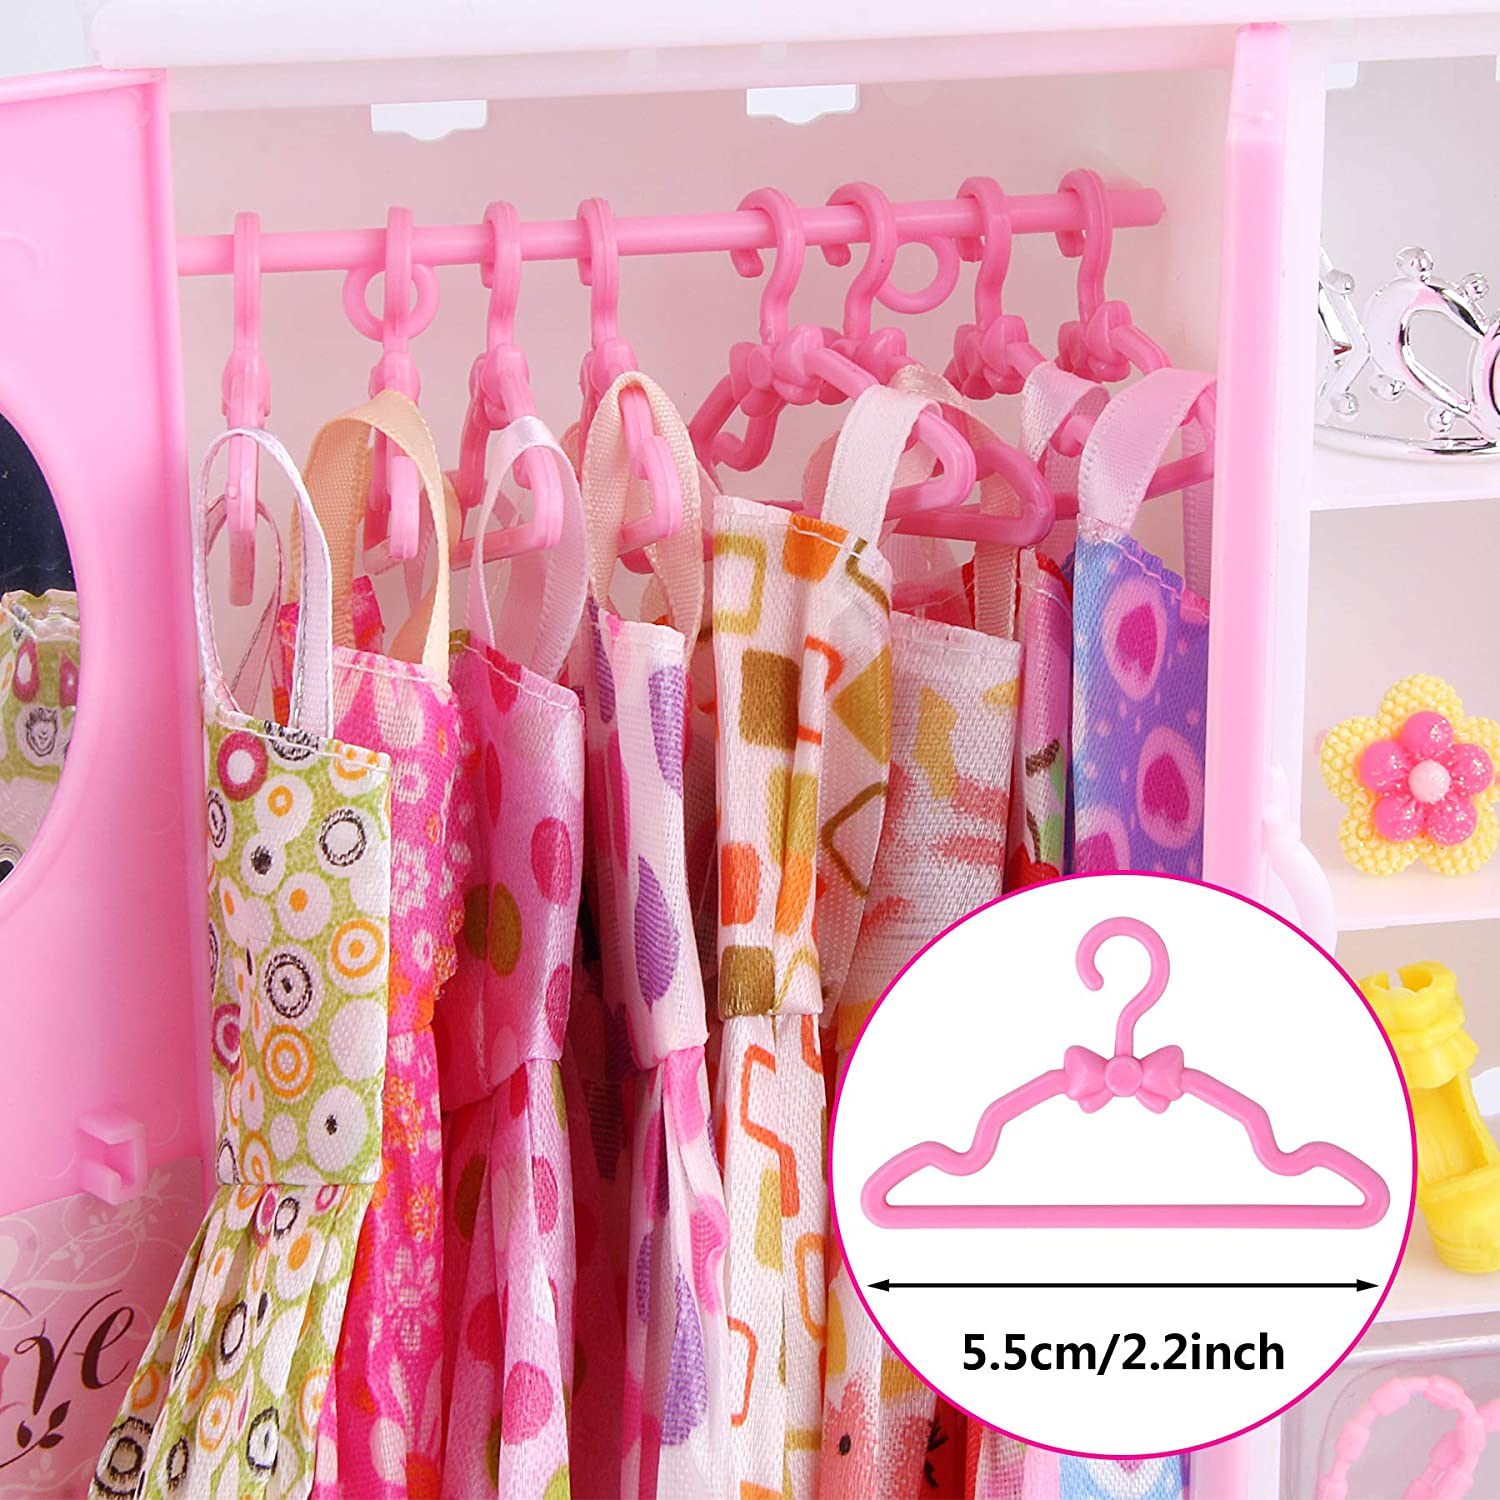 Mixed Packaging JANYUN 50 Packs 5 Styles Small Doll Cloth Hangers for Plastic Hanging Dress Closet Accessories for 11.5 inch Girl Dolls